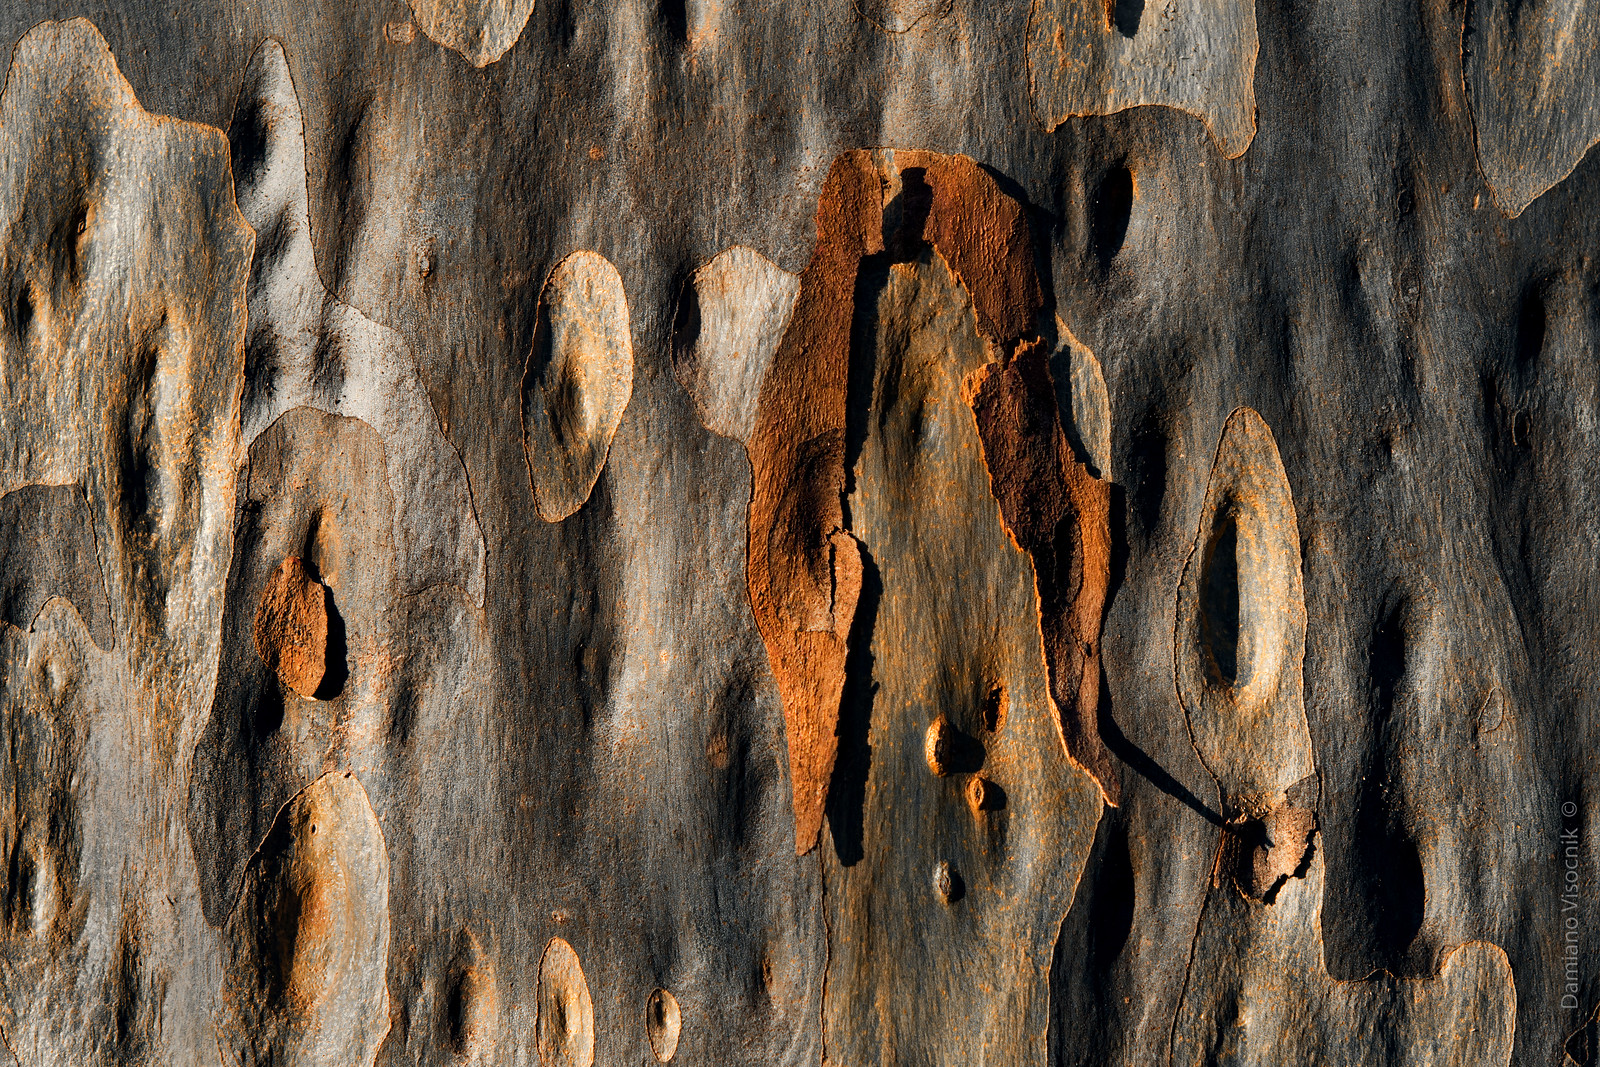 Flaking bark